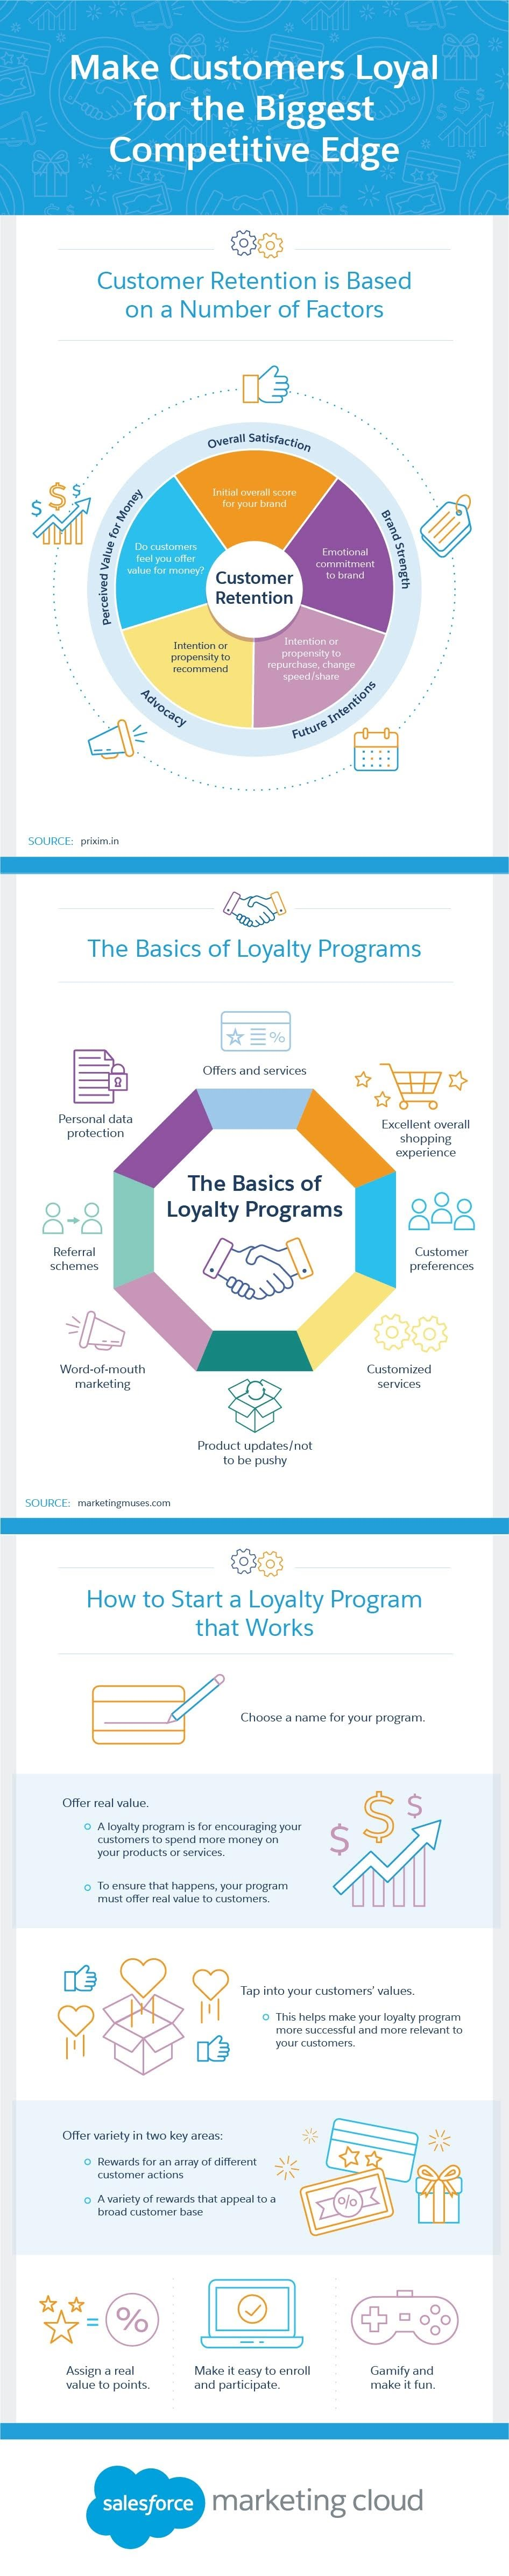 Make Customers Loyal for the Biggest Competitive Edge #Infographic